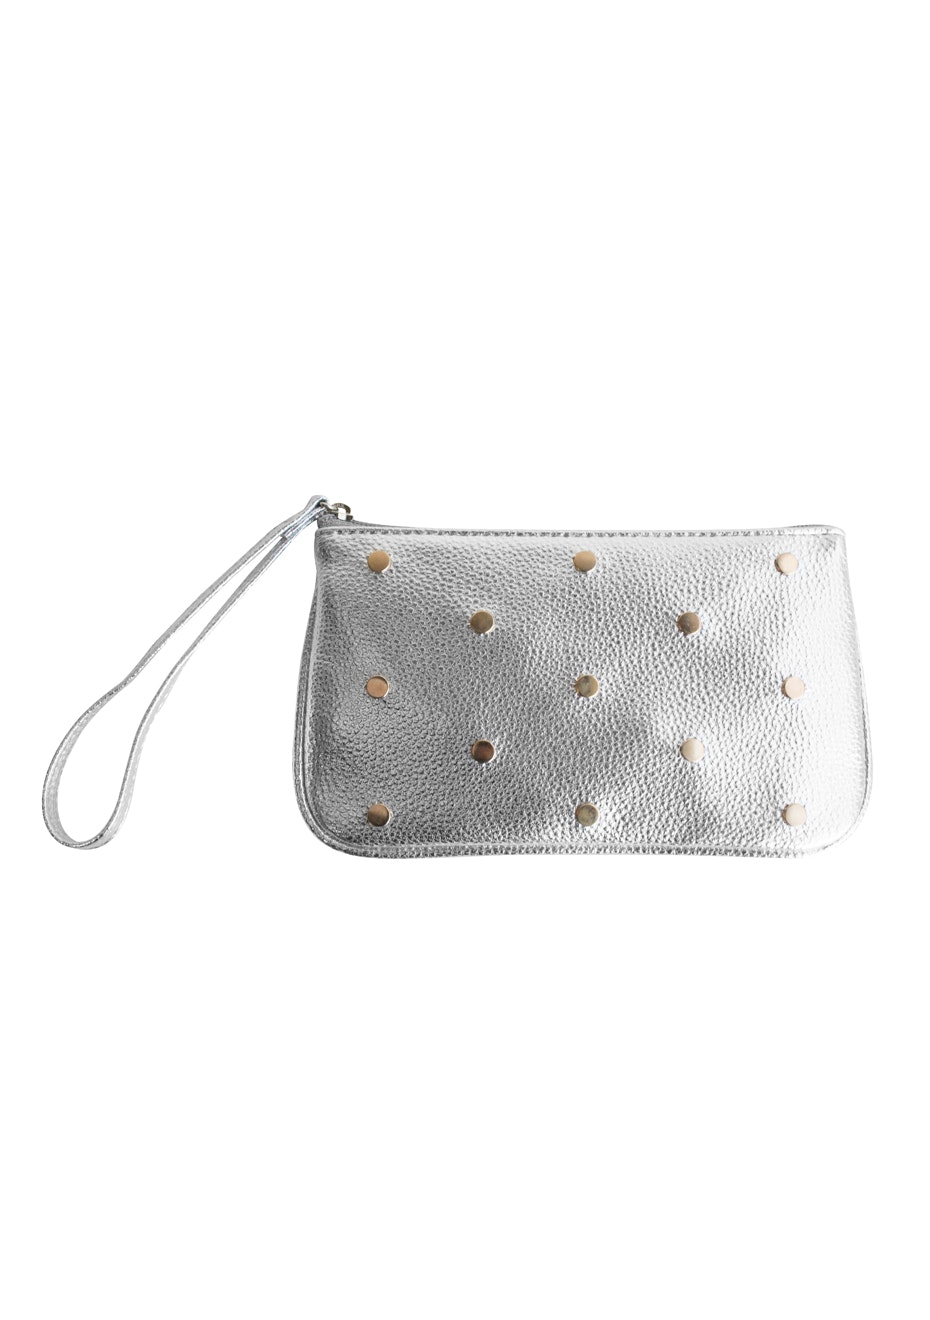 TL+C - Studded Silver Carry Case - Silver